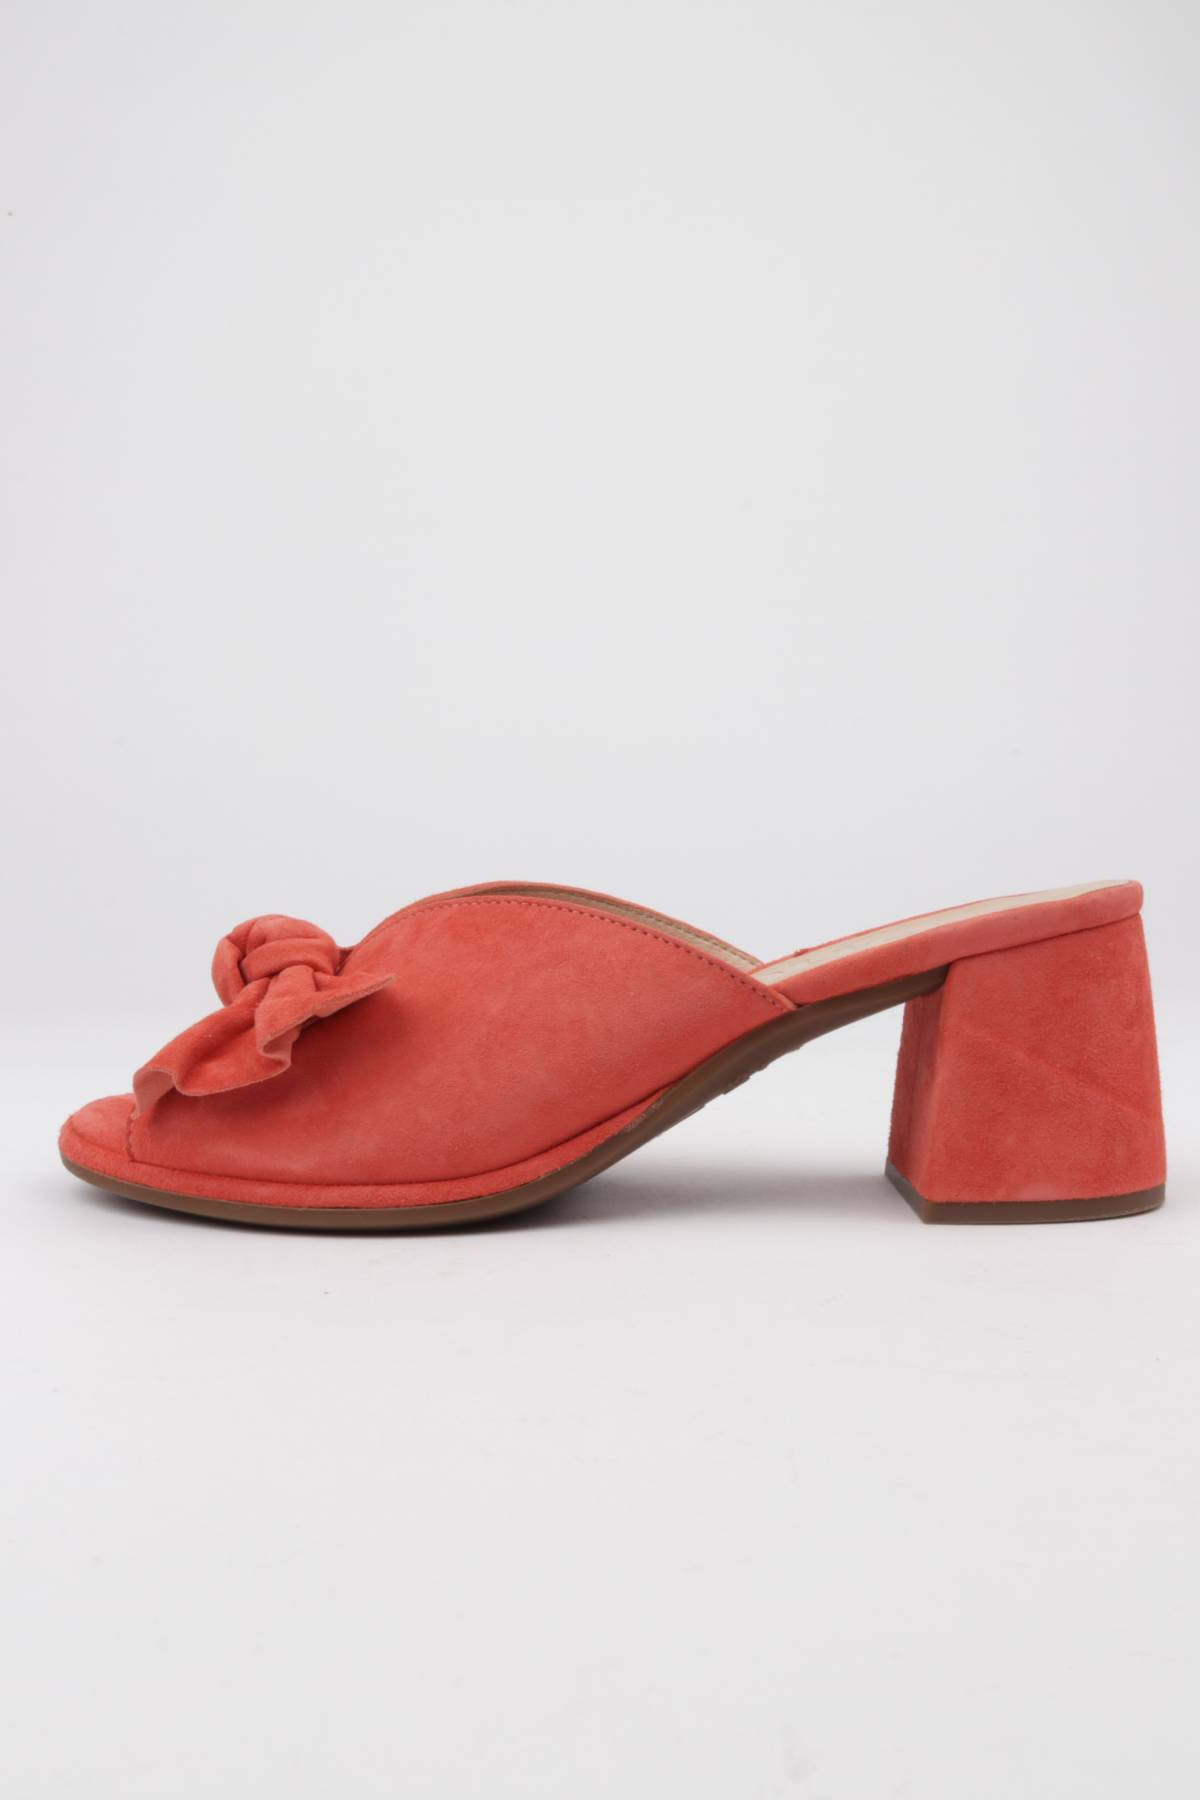 Women's sandals coral suede bow detail